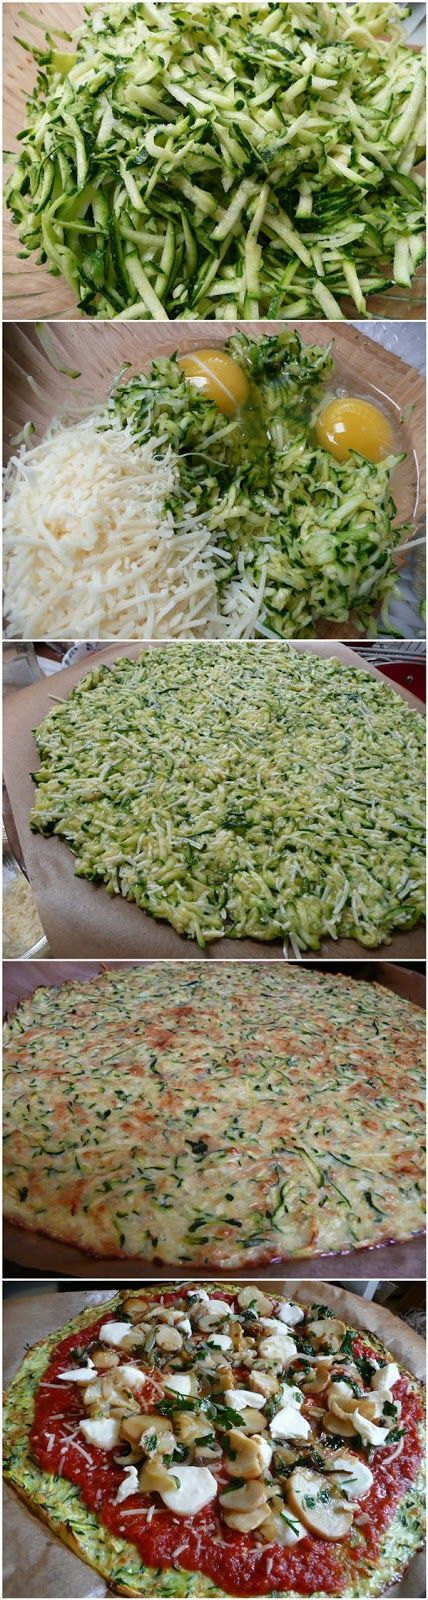 Zucchini Crust Pizza!! (easy recipe)